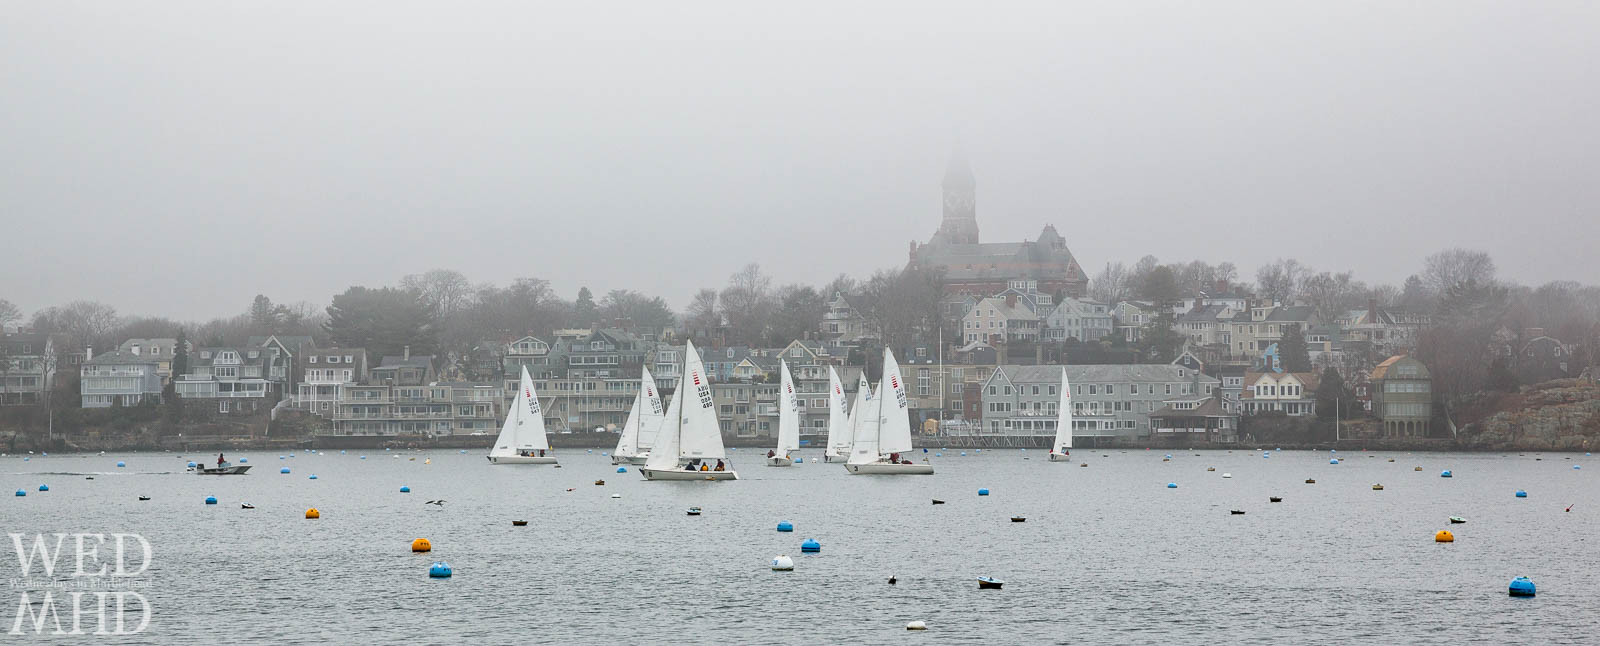 Frostbite sailing earns its name on this cold and foggy January day in Marblehead Harbor